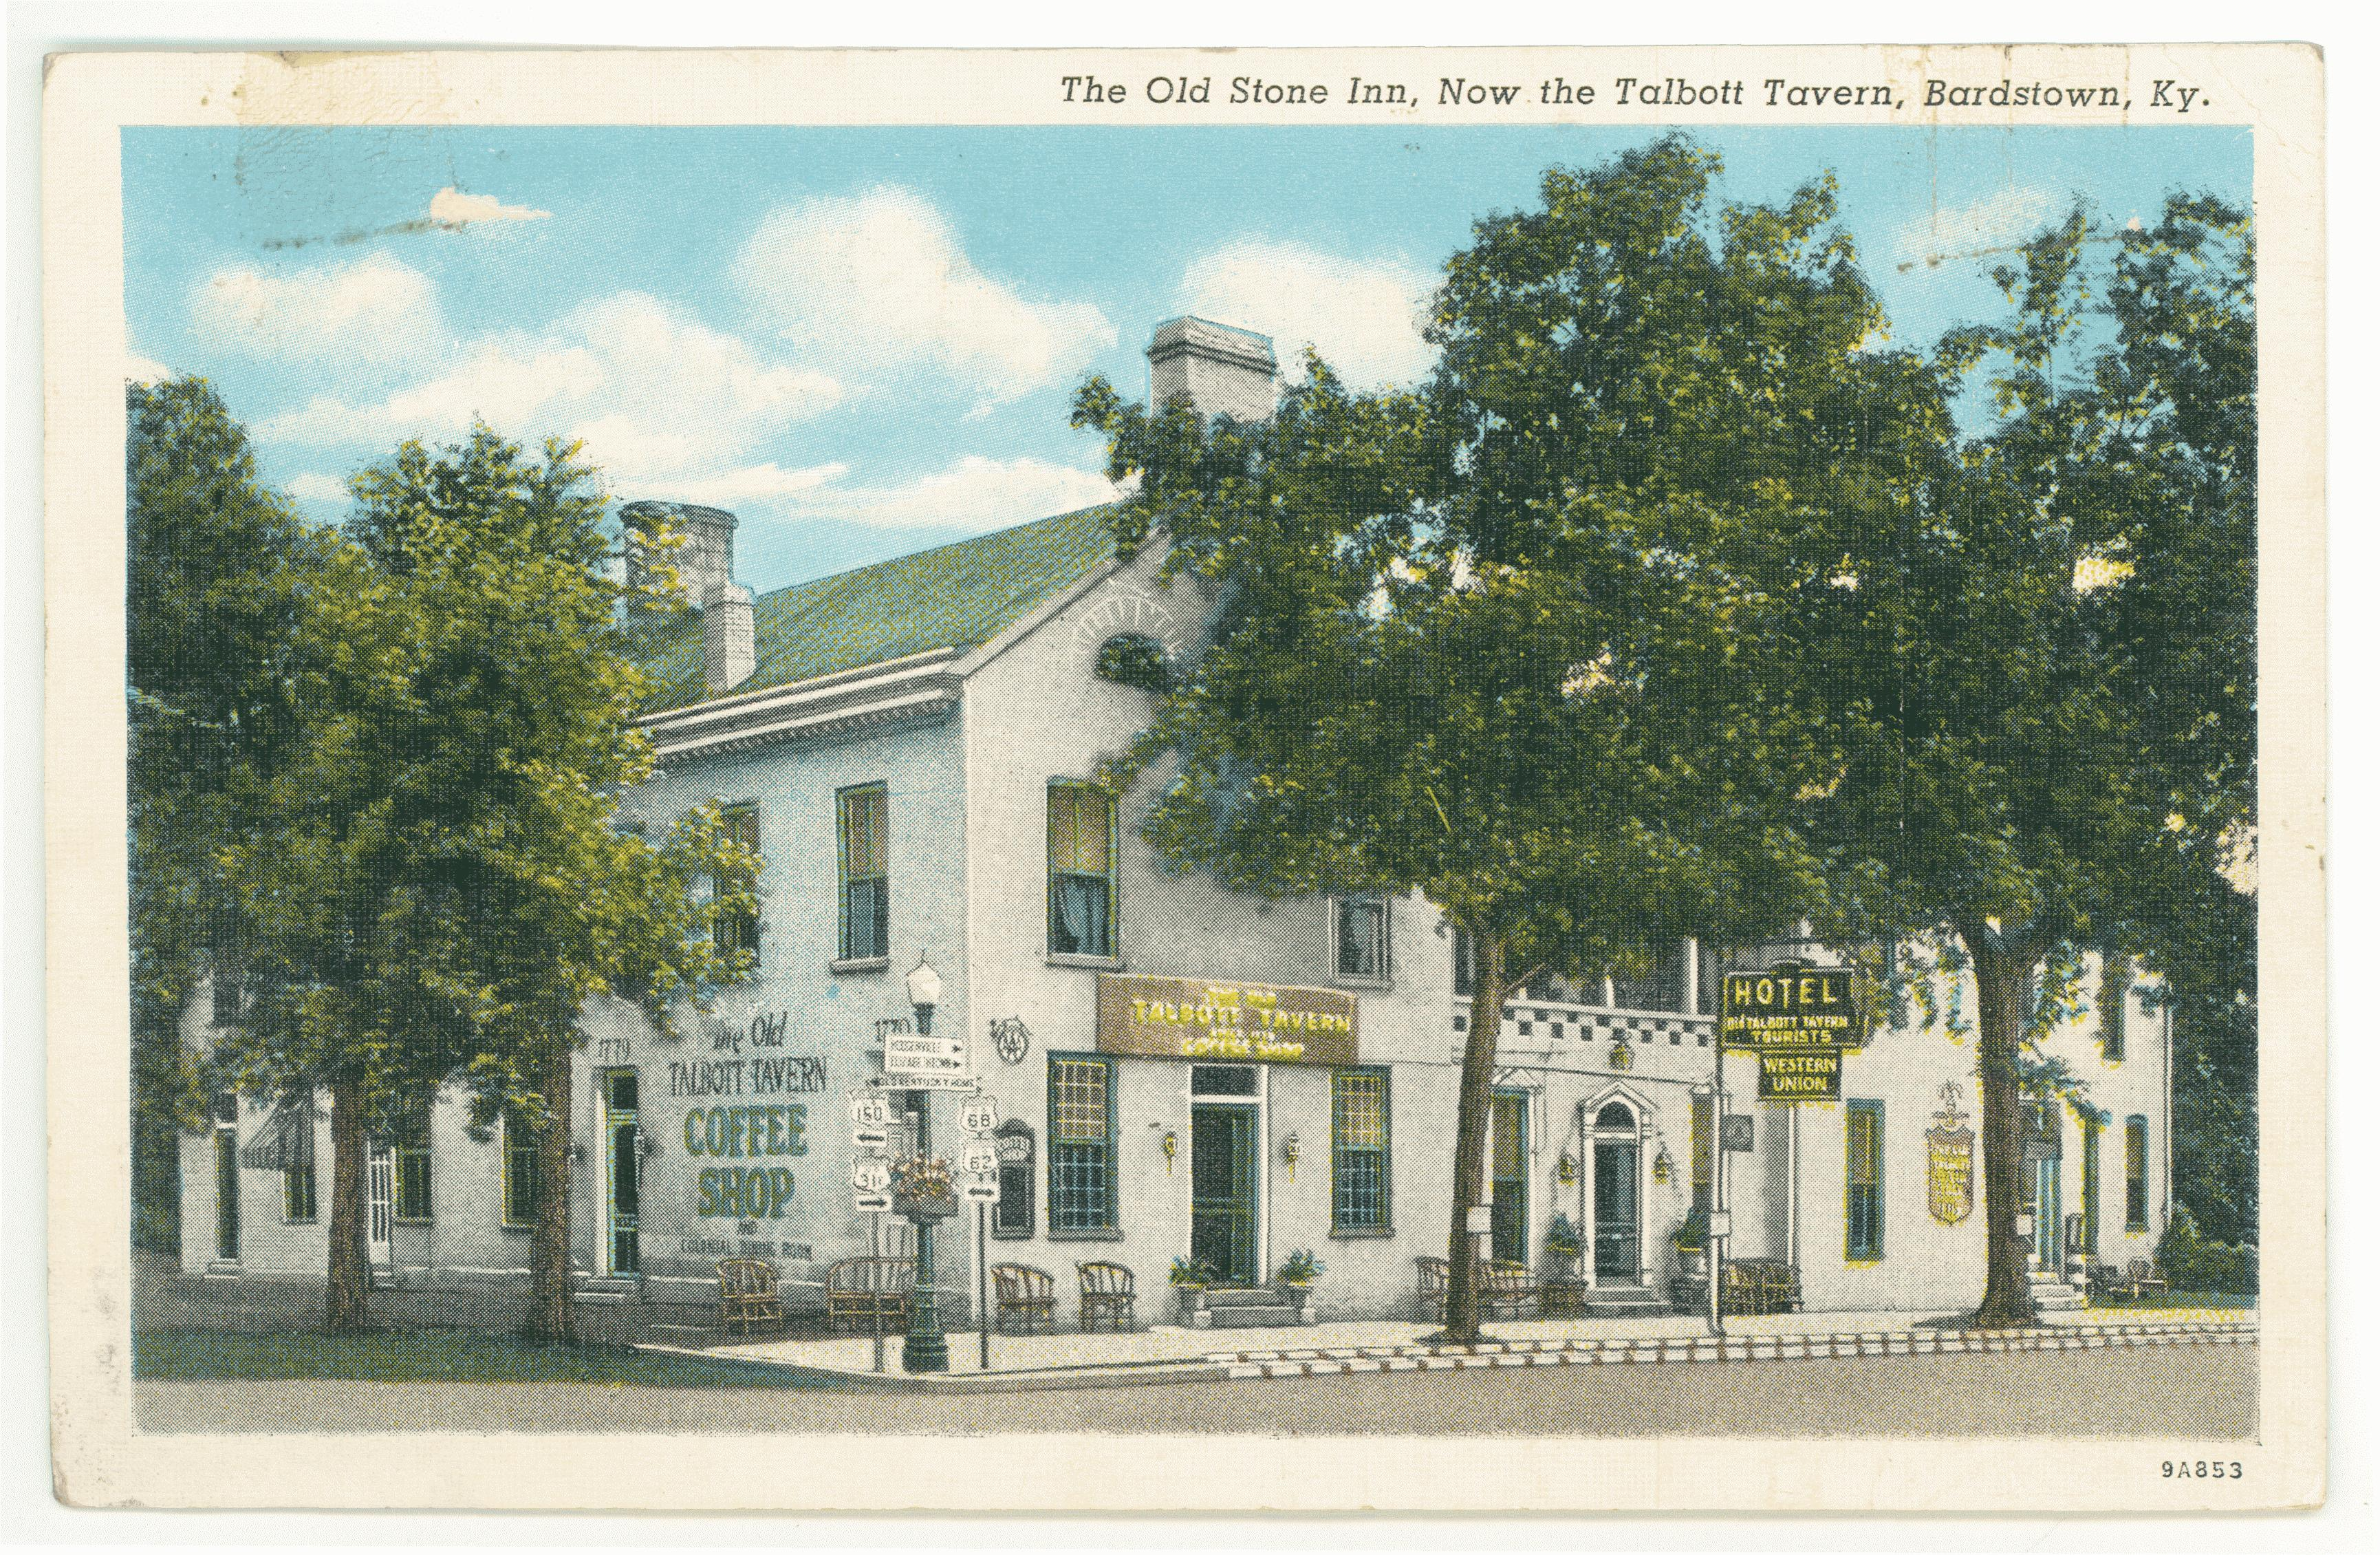 An example of what a tavern looked like during this time period. The photograph is of the Talbott Tavern in Bardstown, Kentucky.